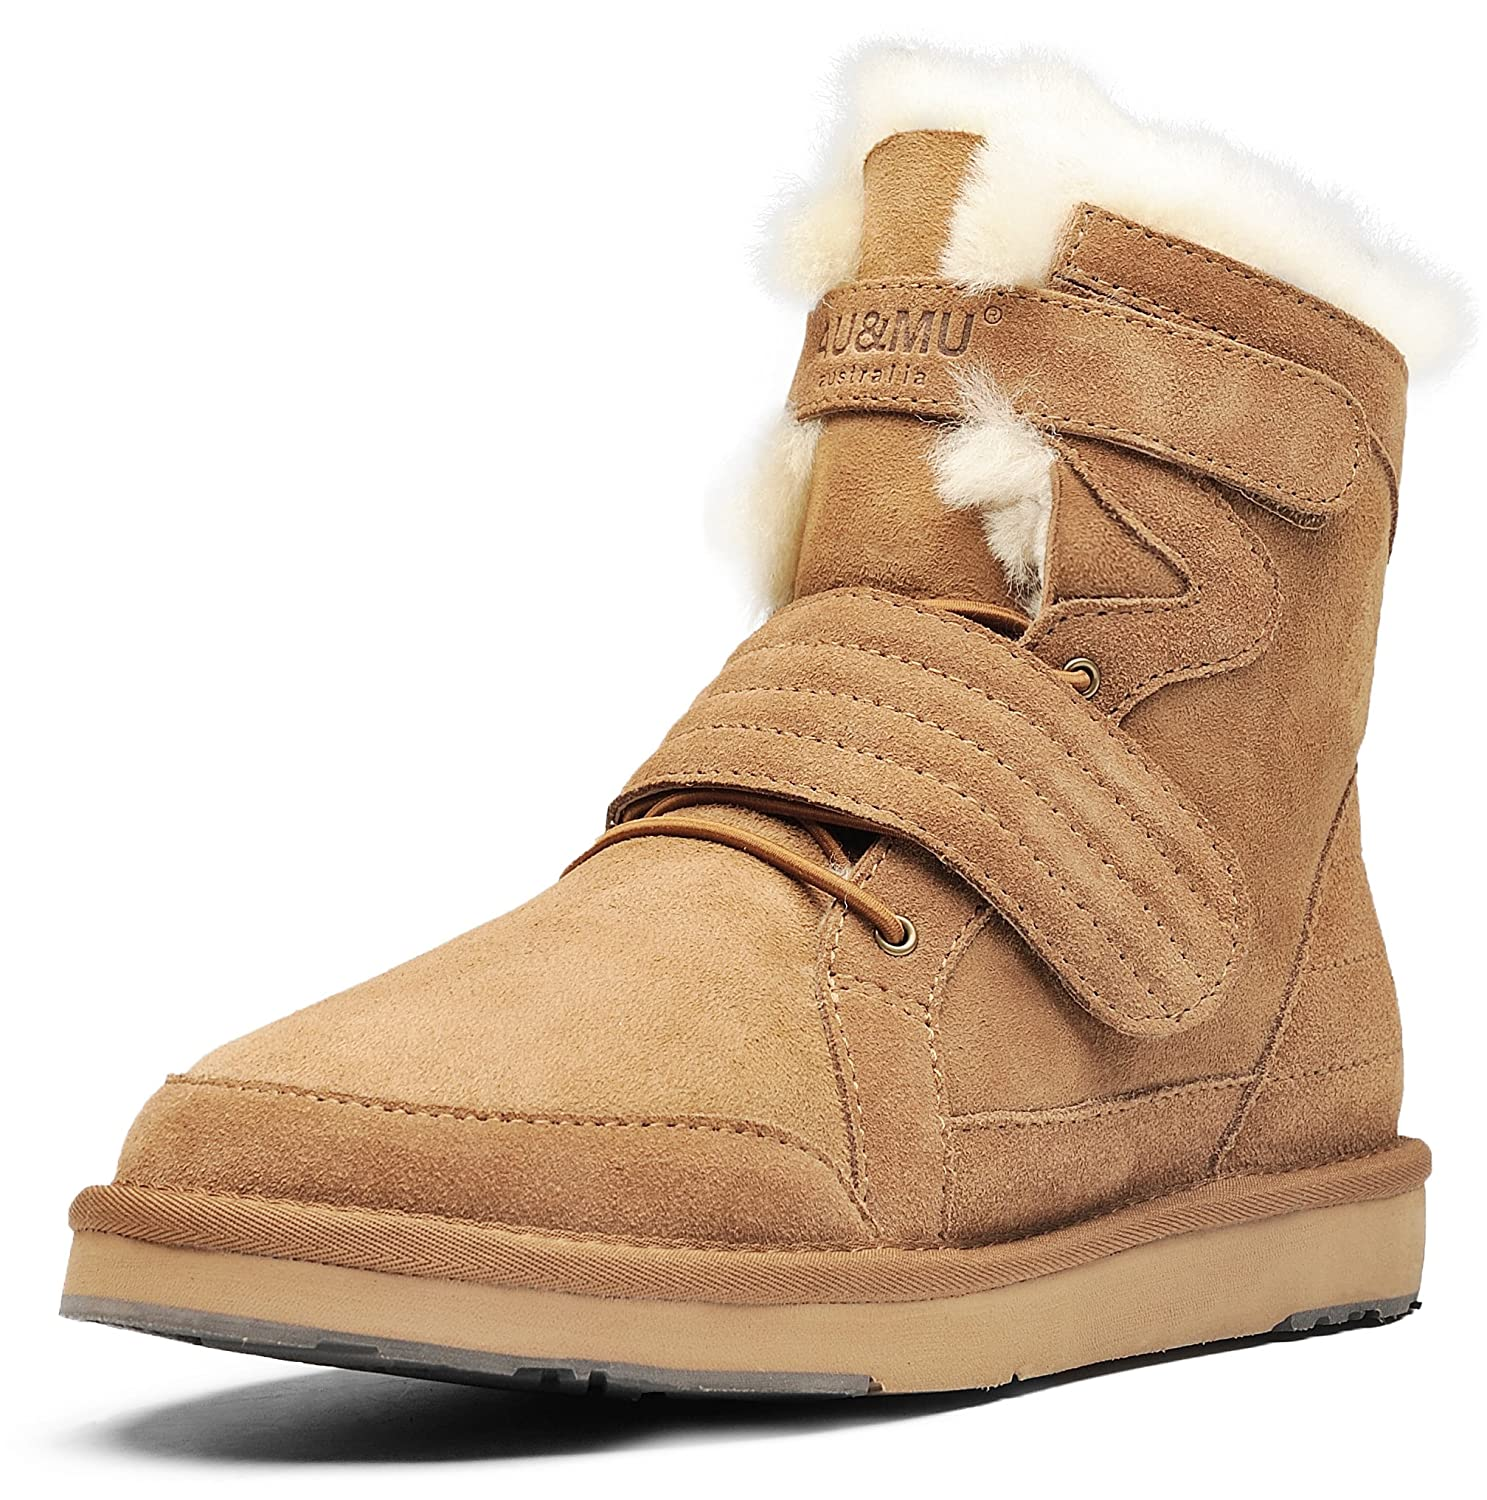 AU&MU Women's Full Fur Sheepskin Suede Winter Snow Boots B073DYY4YZ 7 B(M) US|Chestnut 3